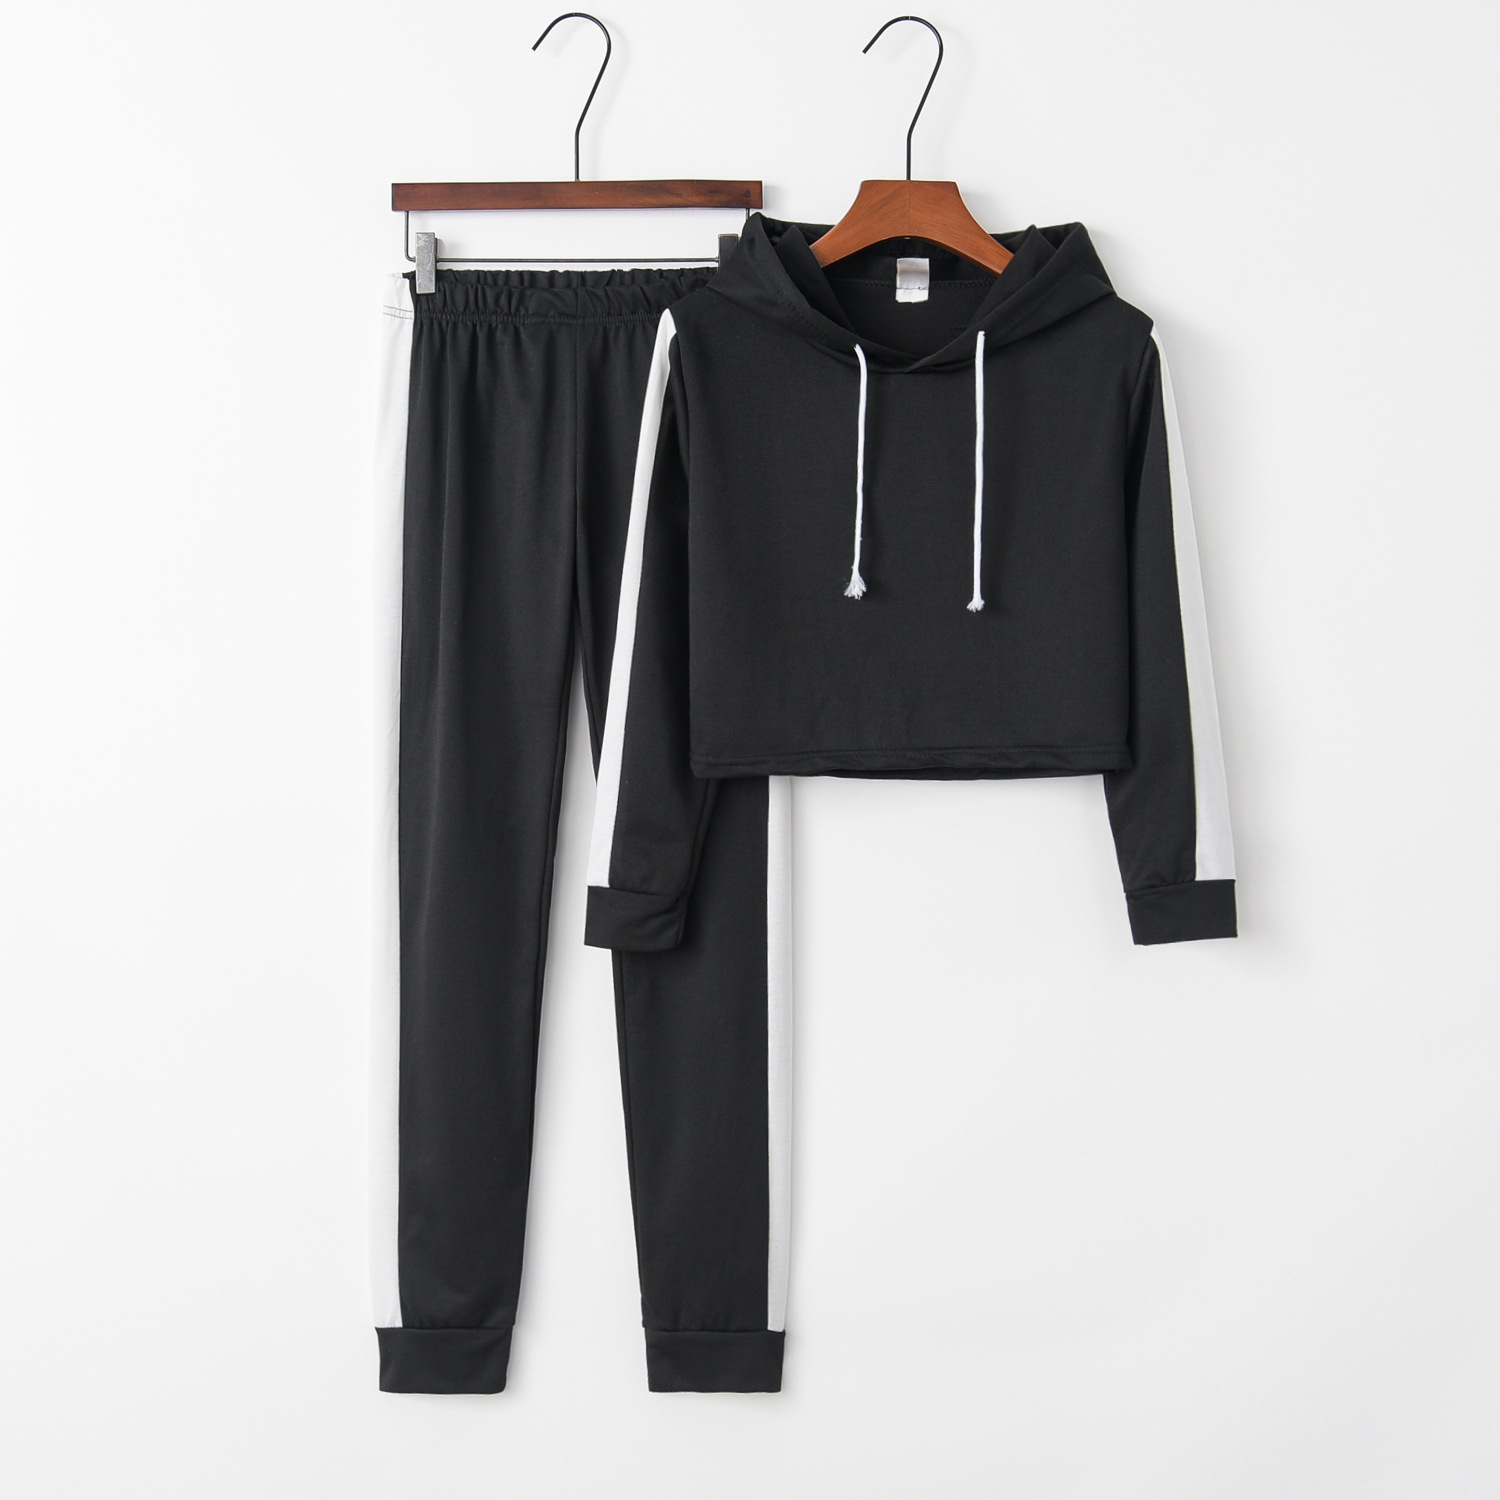 women's hooded long sleeve color matching casual sports suit NSYF1823